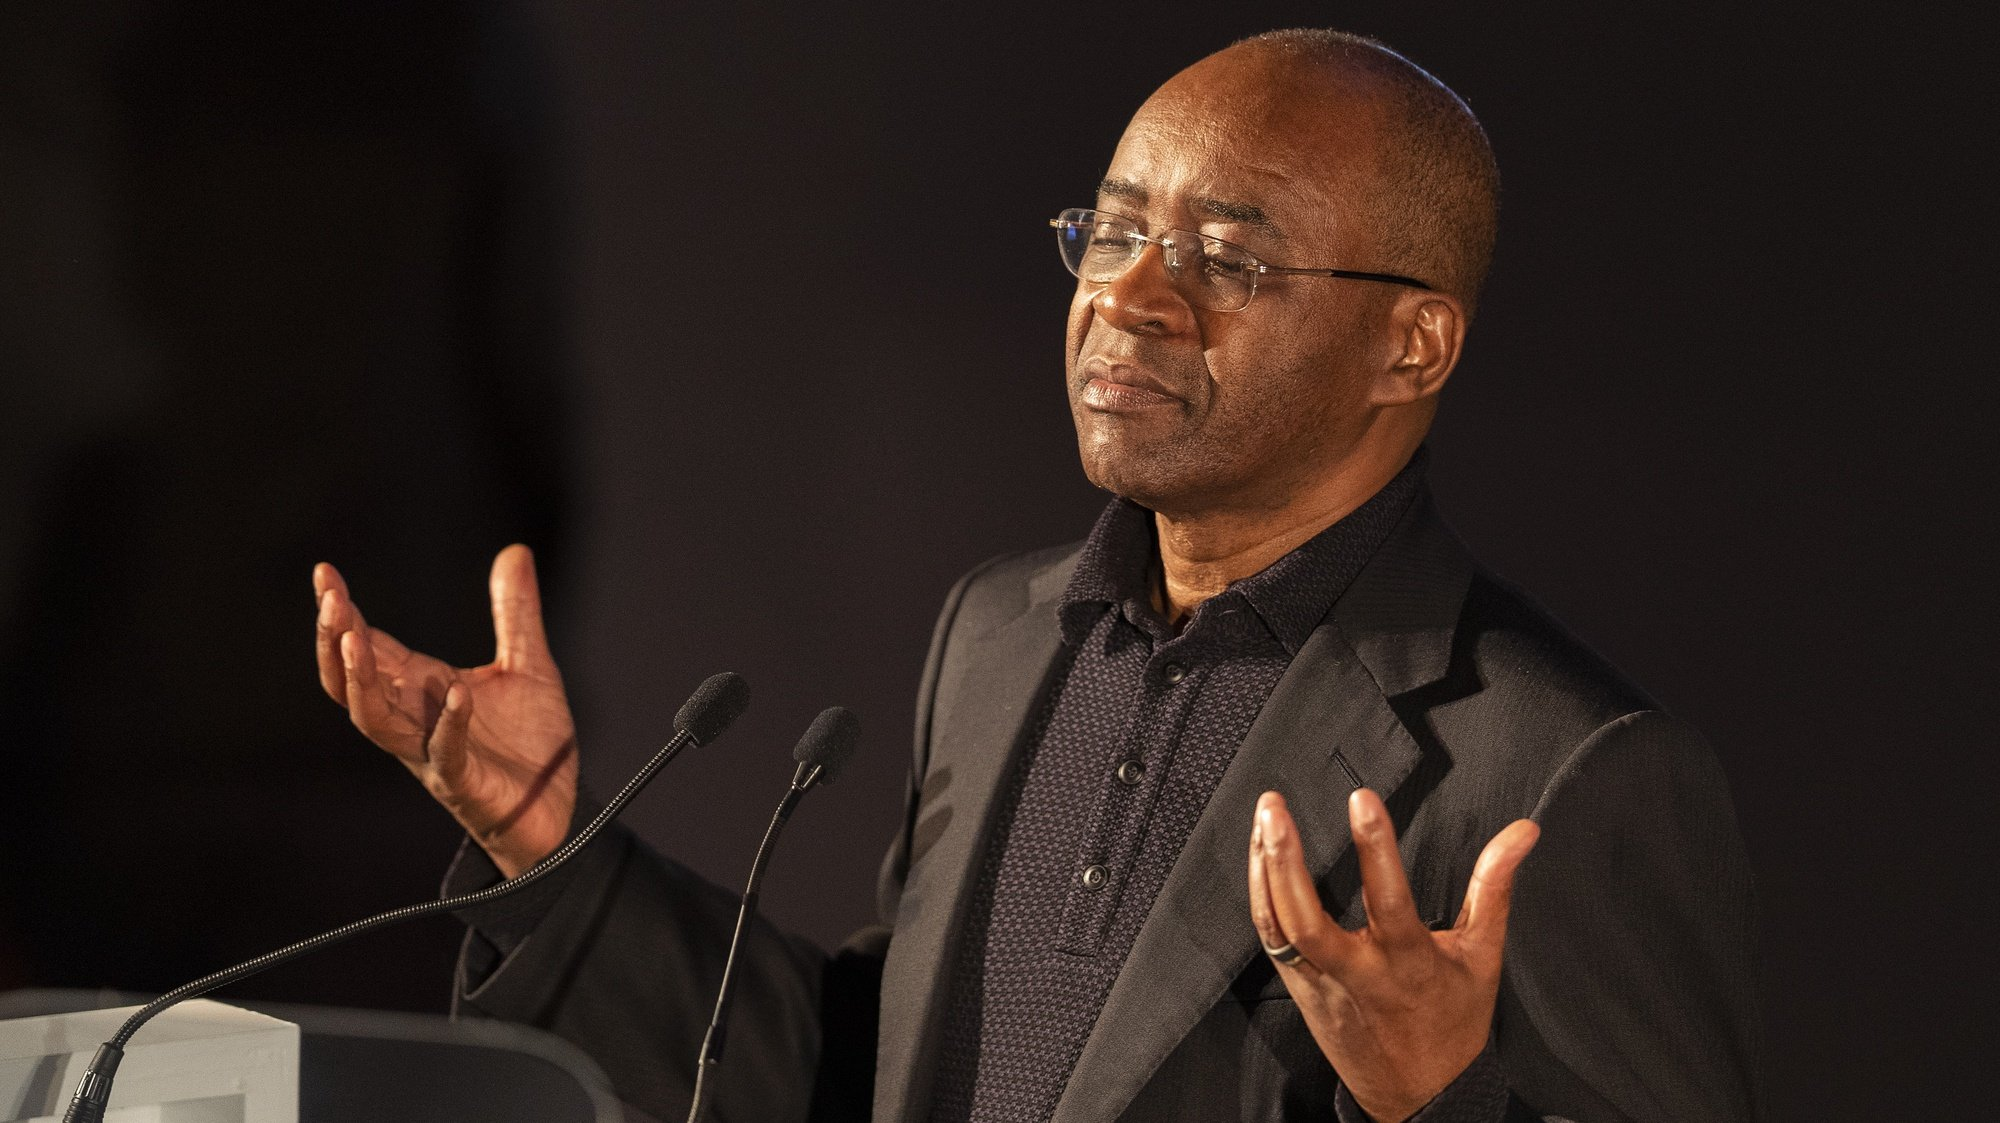 epa07904301 Tech billionaire Strive Masiyiwa speaks during the 9th Annual Desmond Tutu International Peace Lecture at the Cape Town City Hall, South Africa 07 October 2019. Archbishop Emeritus Desmond Tutu celebrates his 88th birthday on 07 October. The lecture by Zimbabwean-born businessman and philanthropist, Strive Masiyiwa, focused on one of the critical struggles of our time: Overcoming corruption and restoring citizen trust, locally and globally.  EPA/NIC BOTHMA